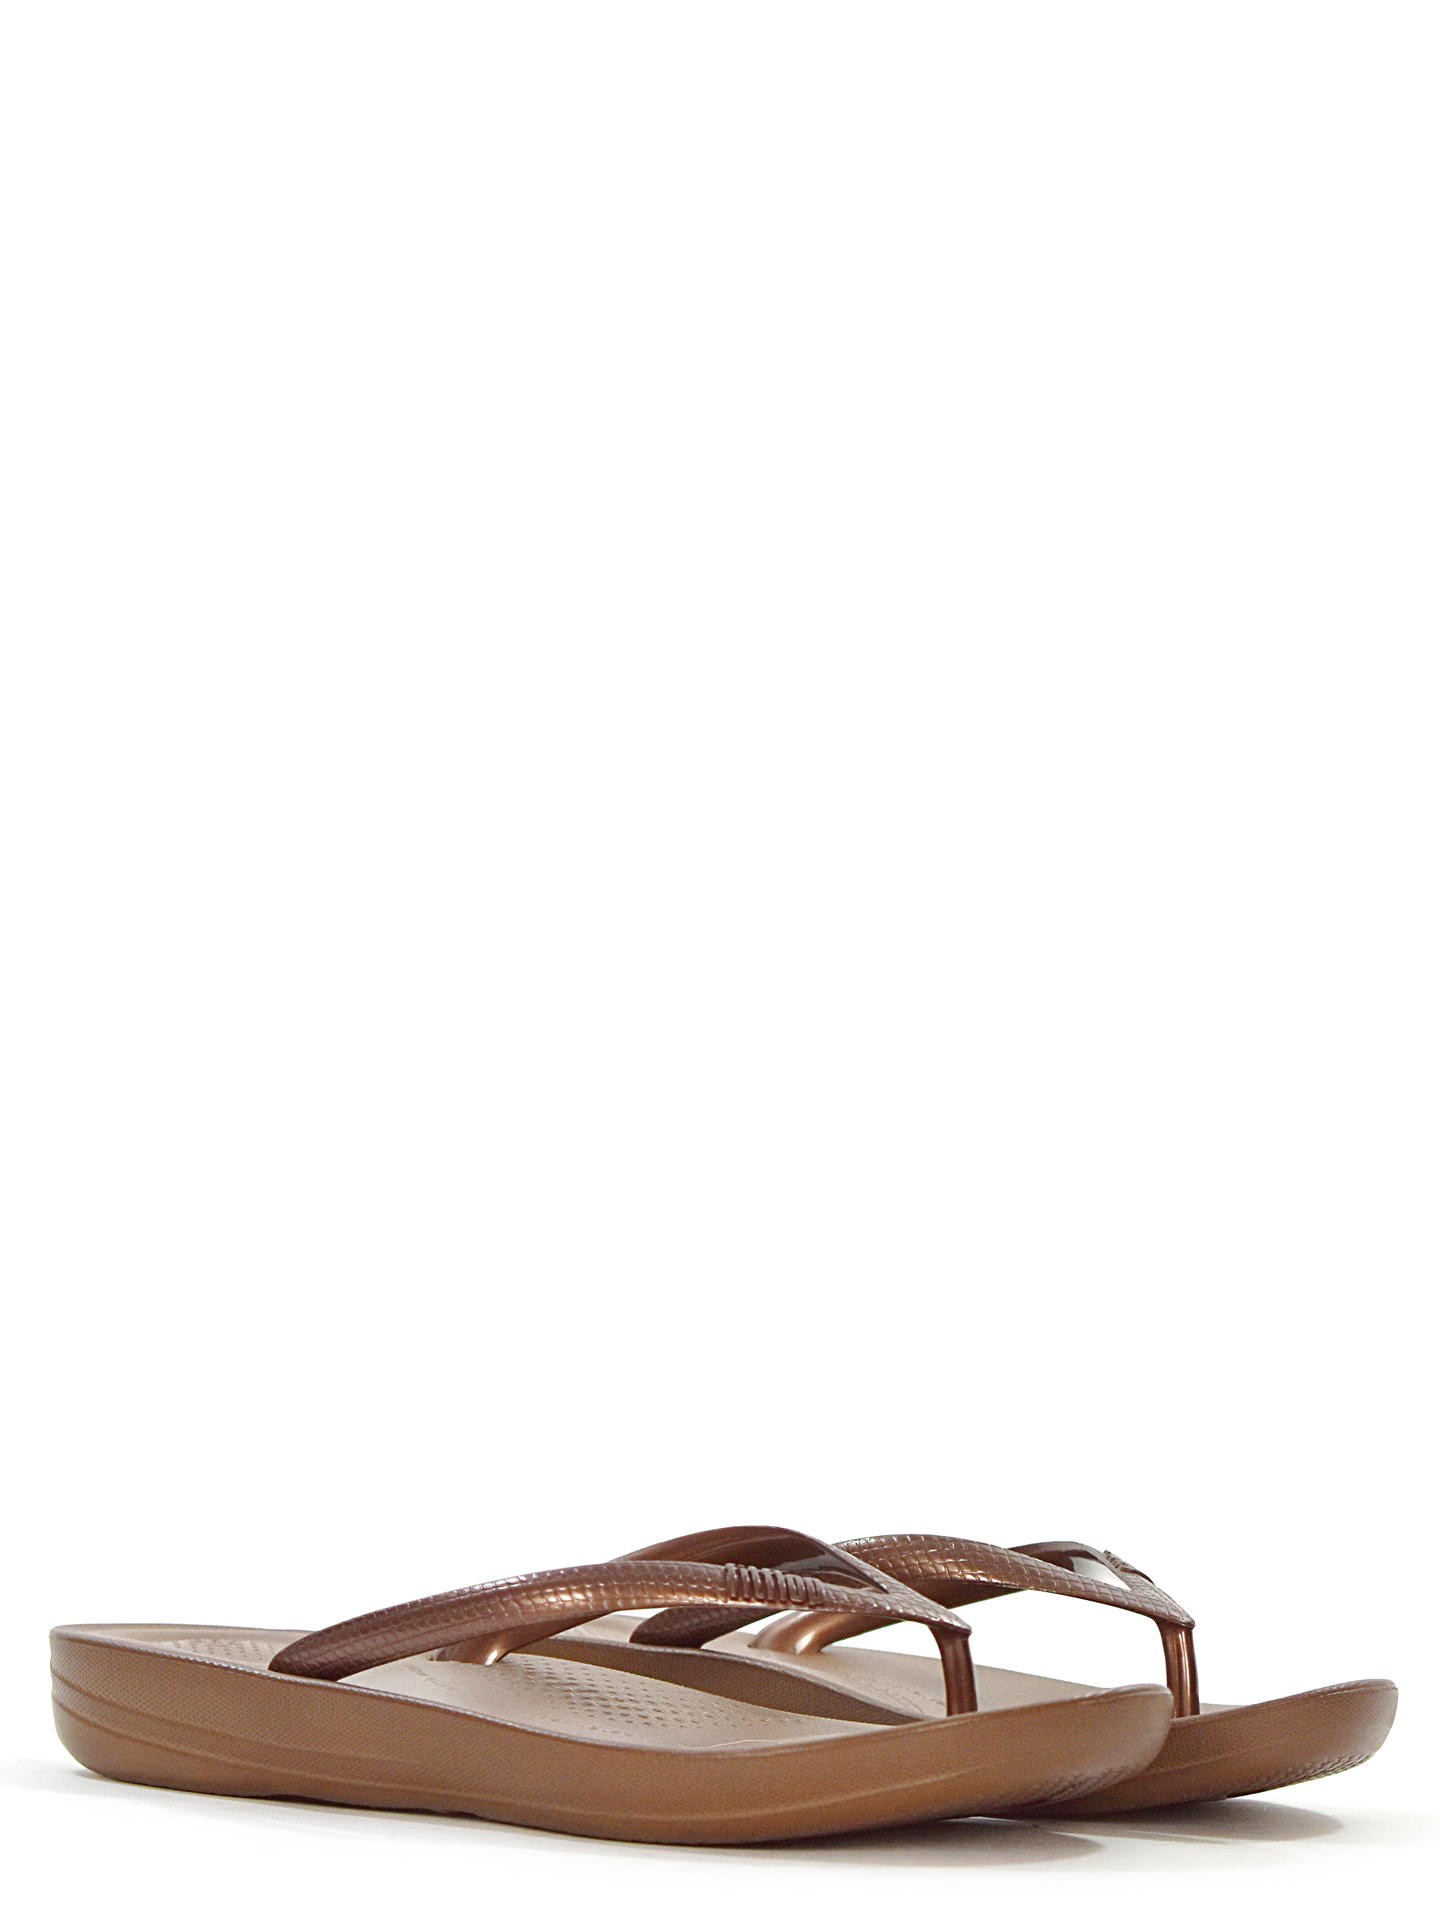 SANDALO BASSO FITFLOP IQUSHIONTM BRONZO